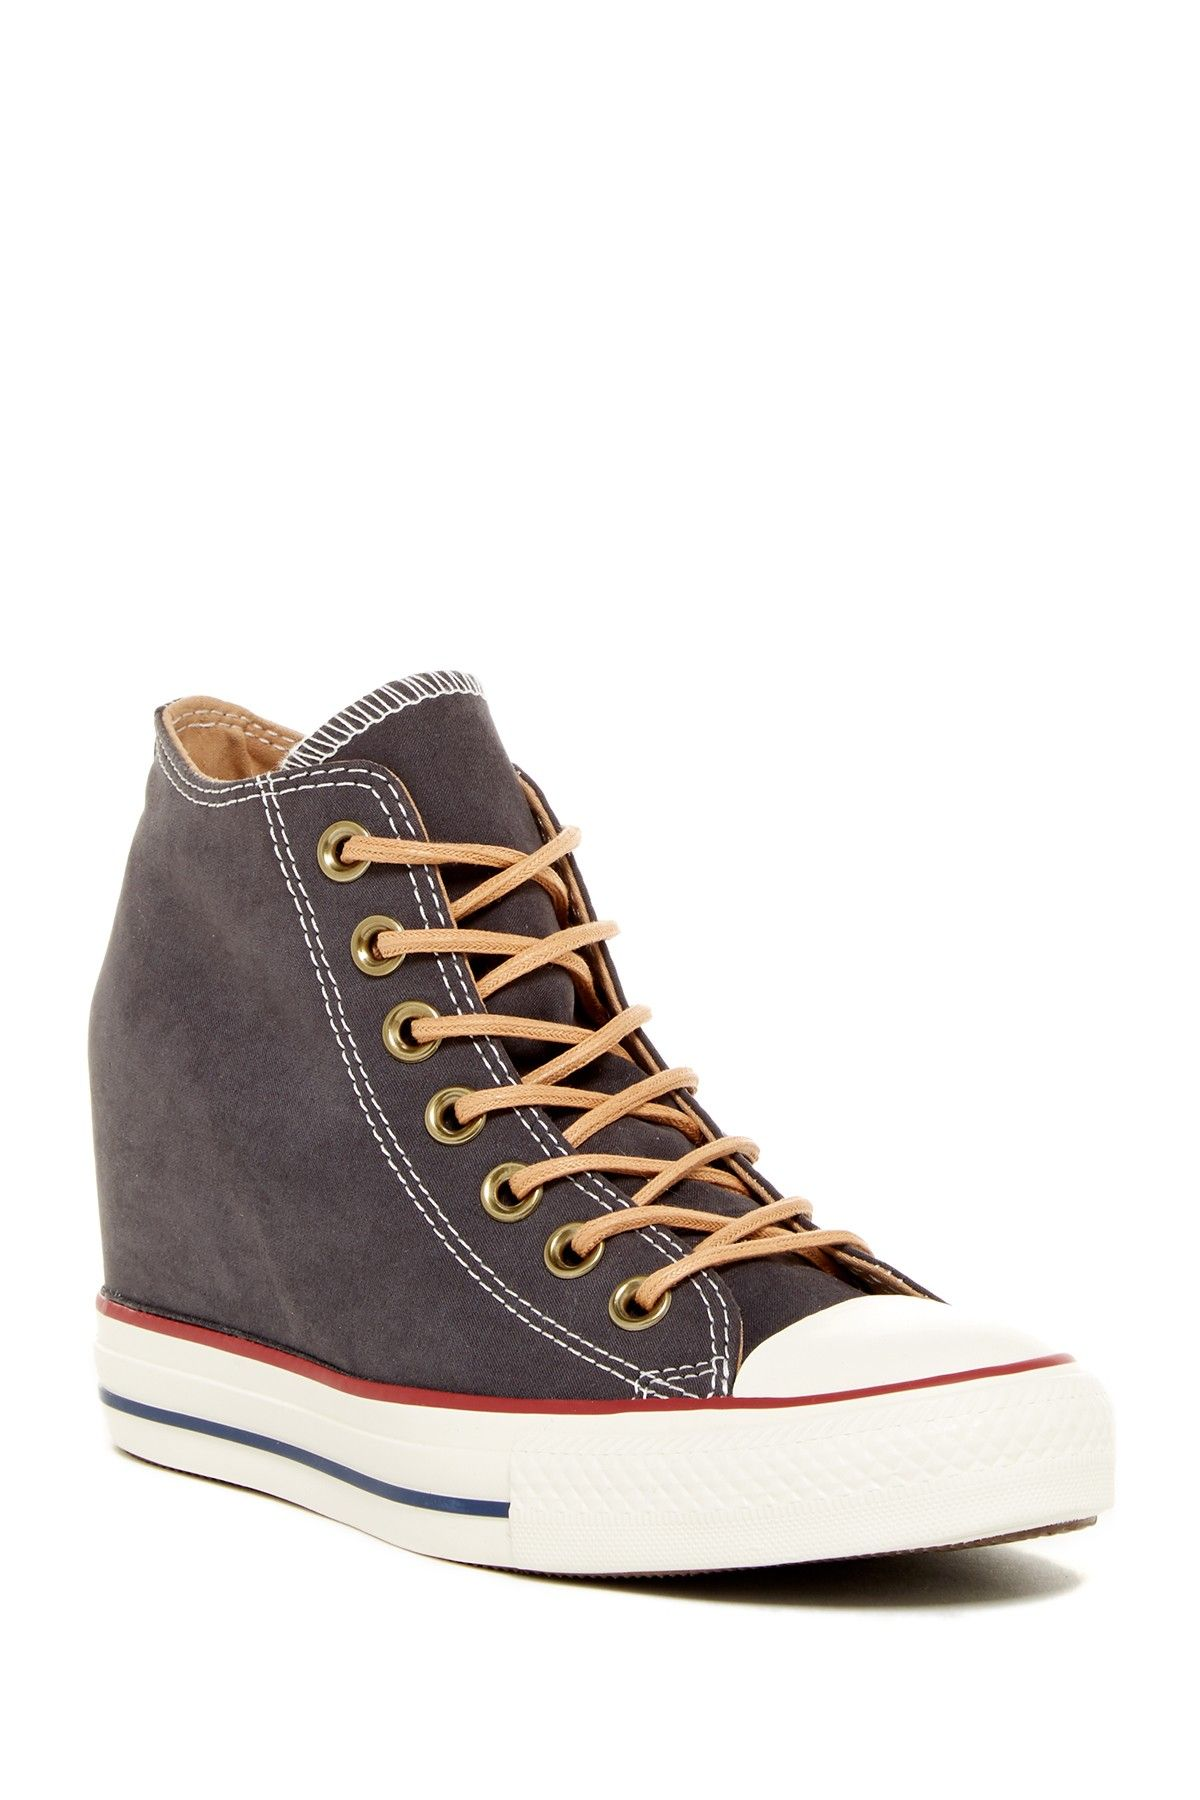 converse chuck taylor all star lux wedge mid Brown